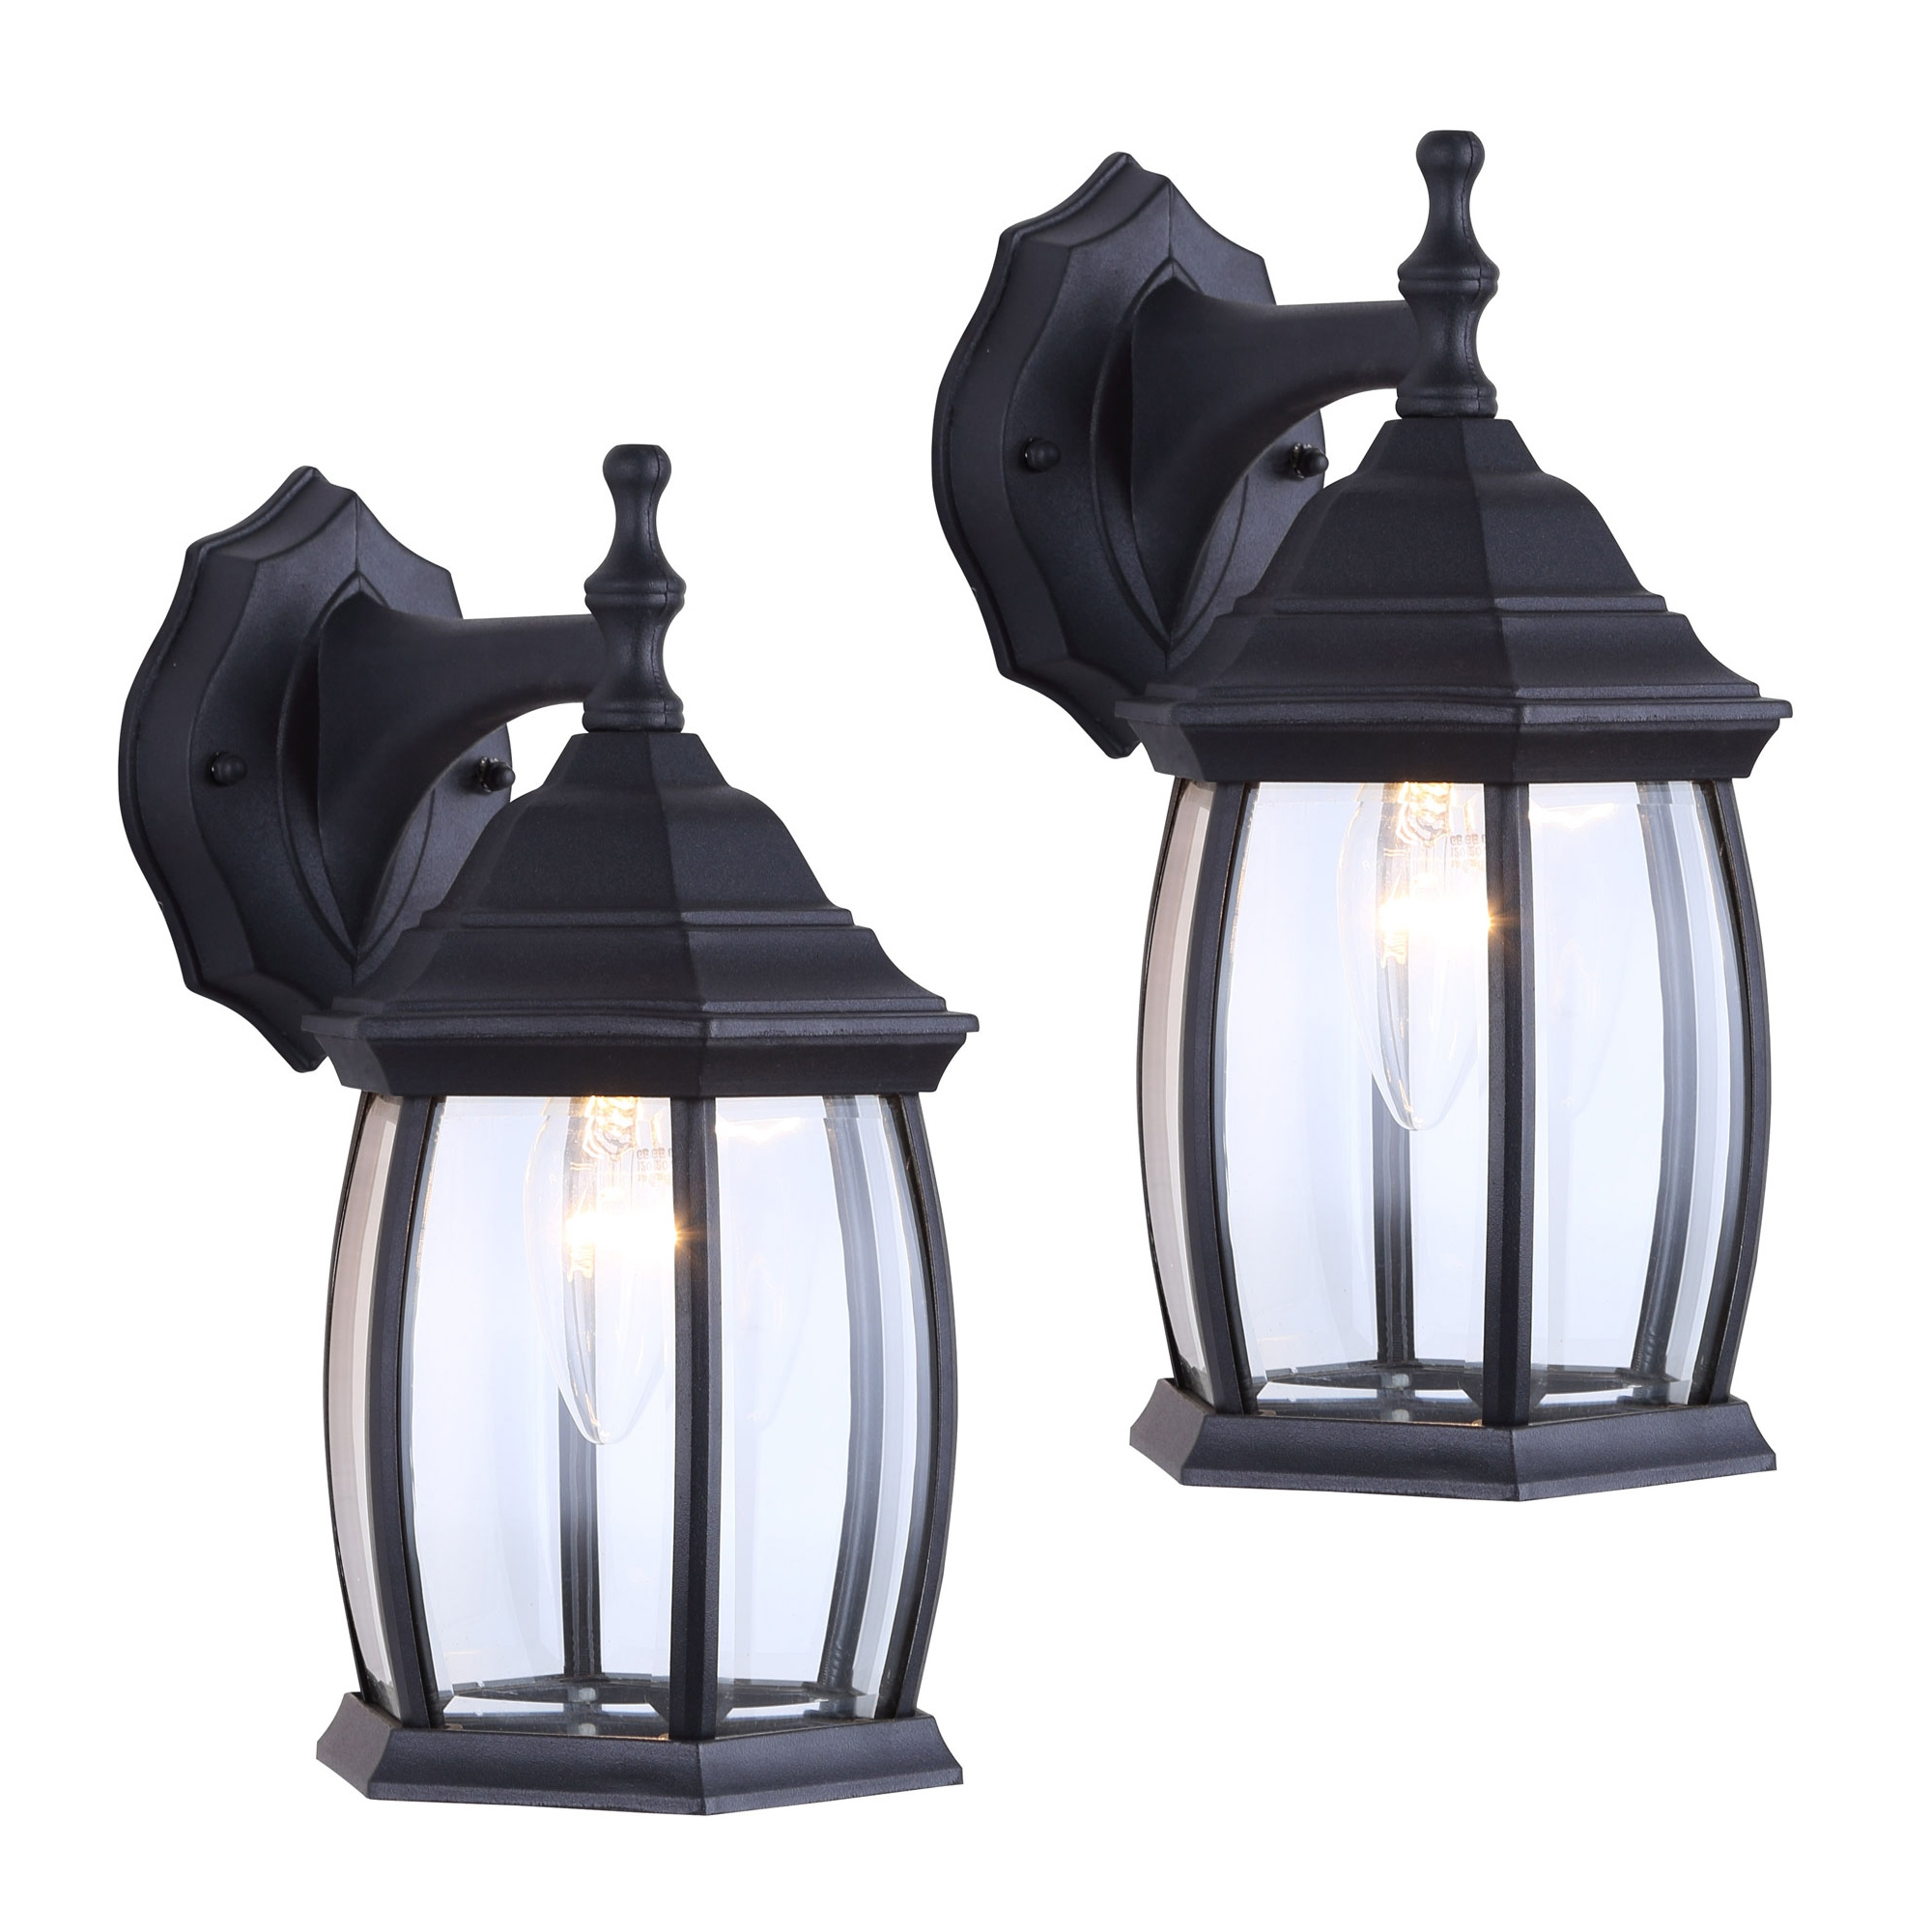 Most Recent 2 Pack Of Exterior Outdoor Light Fixture Wall Lantern Within Bayou Beveled Glass Outdoor Wall Lanterns (View 2 of 20)